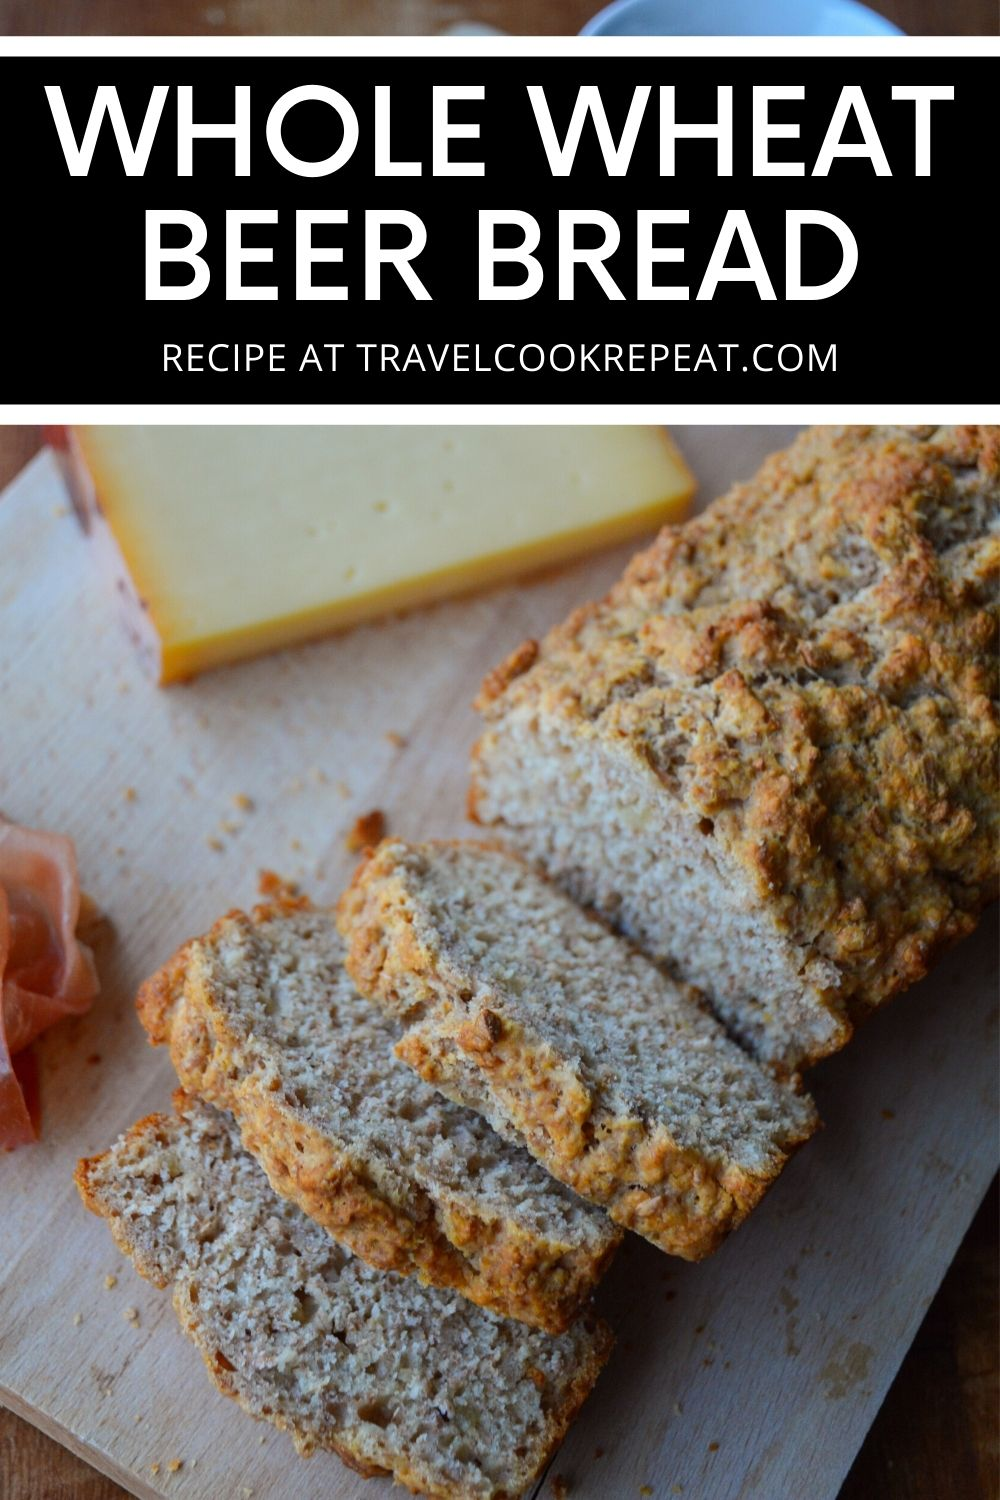 The Best Whole Wheat Beer Bread